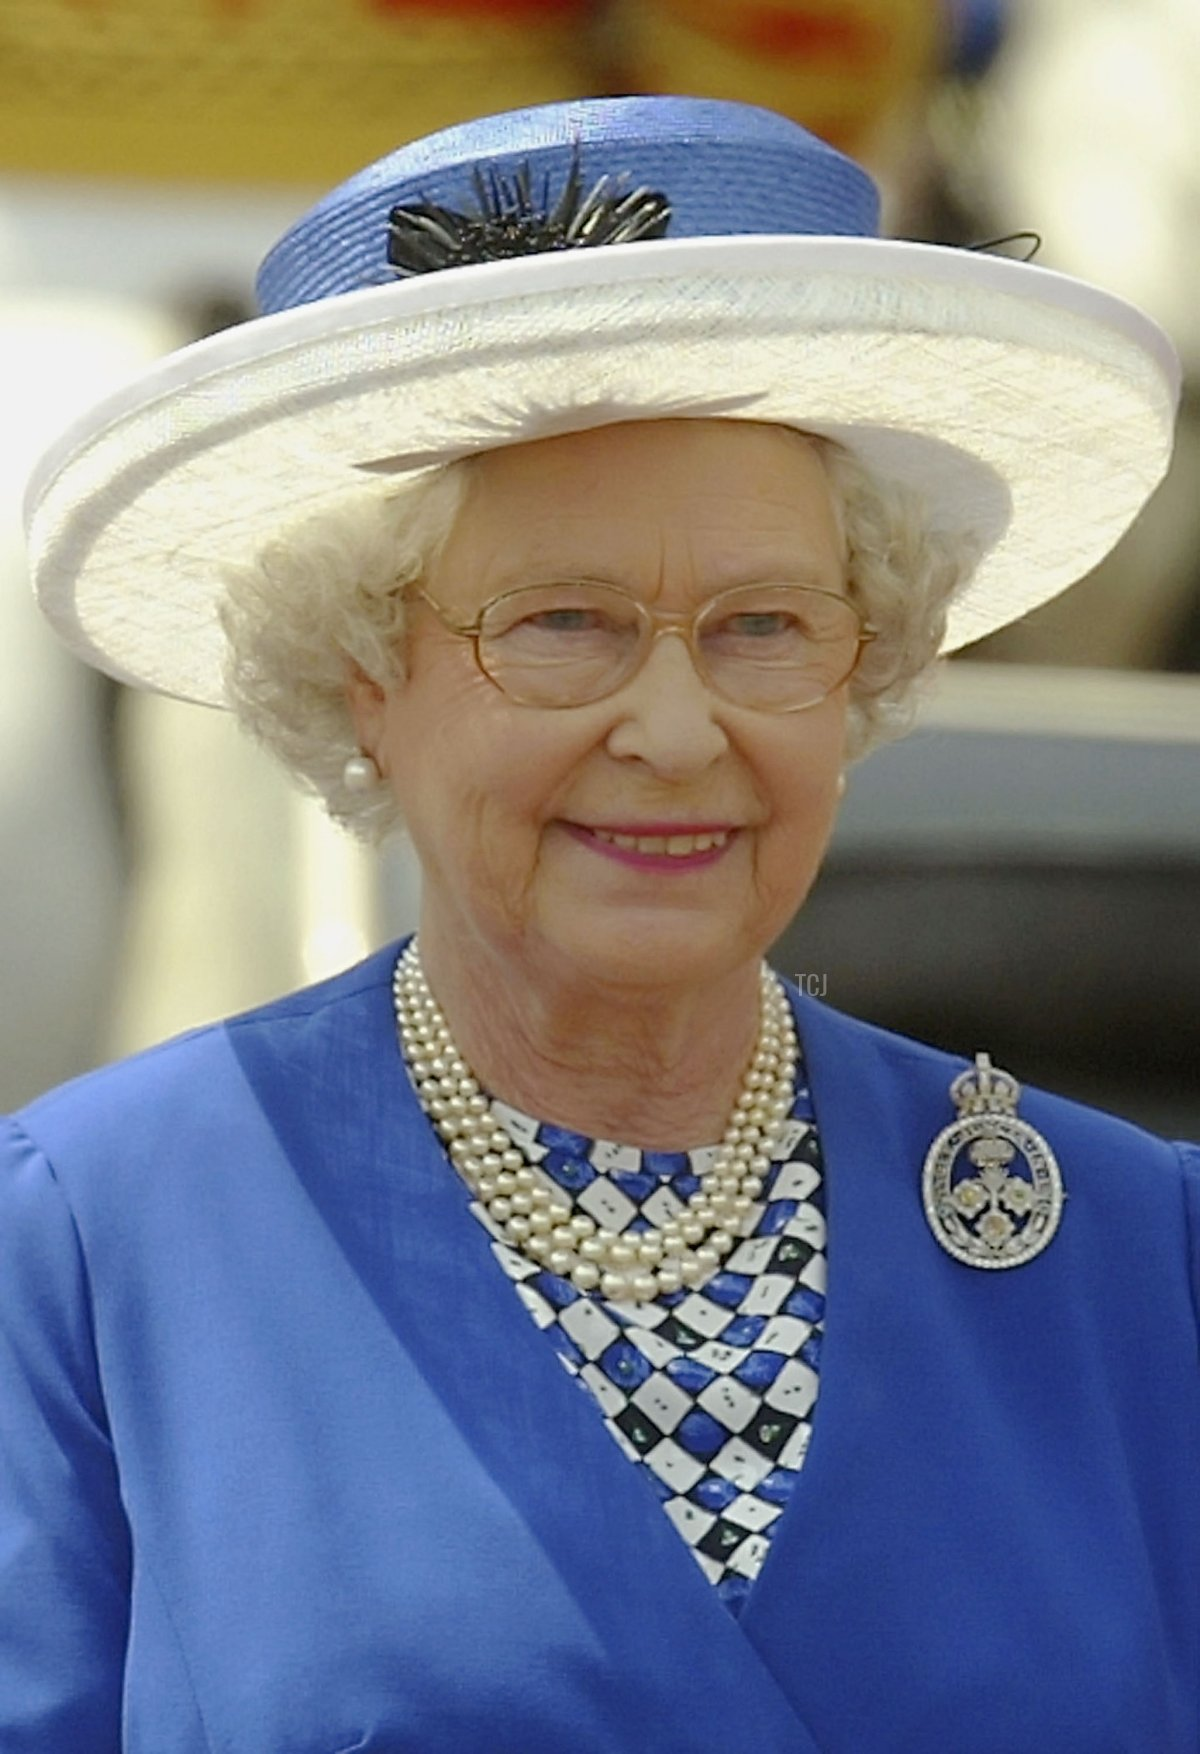 Britain's Queen Elizabeth II smiles as she arrives at Buckingham Palace after attending the Trooping of the Colour ceremony June 14, 2003 in London, England